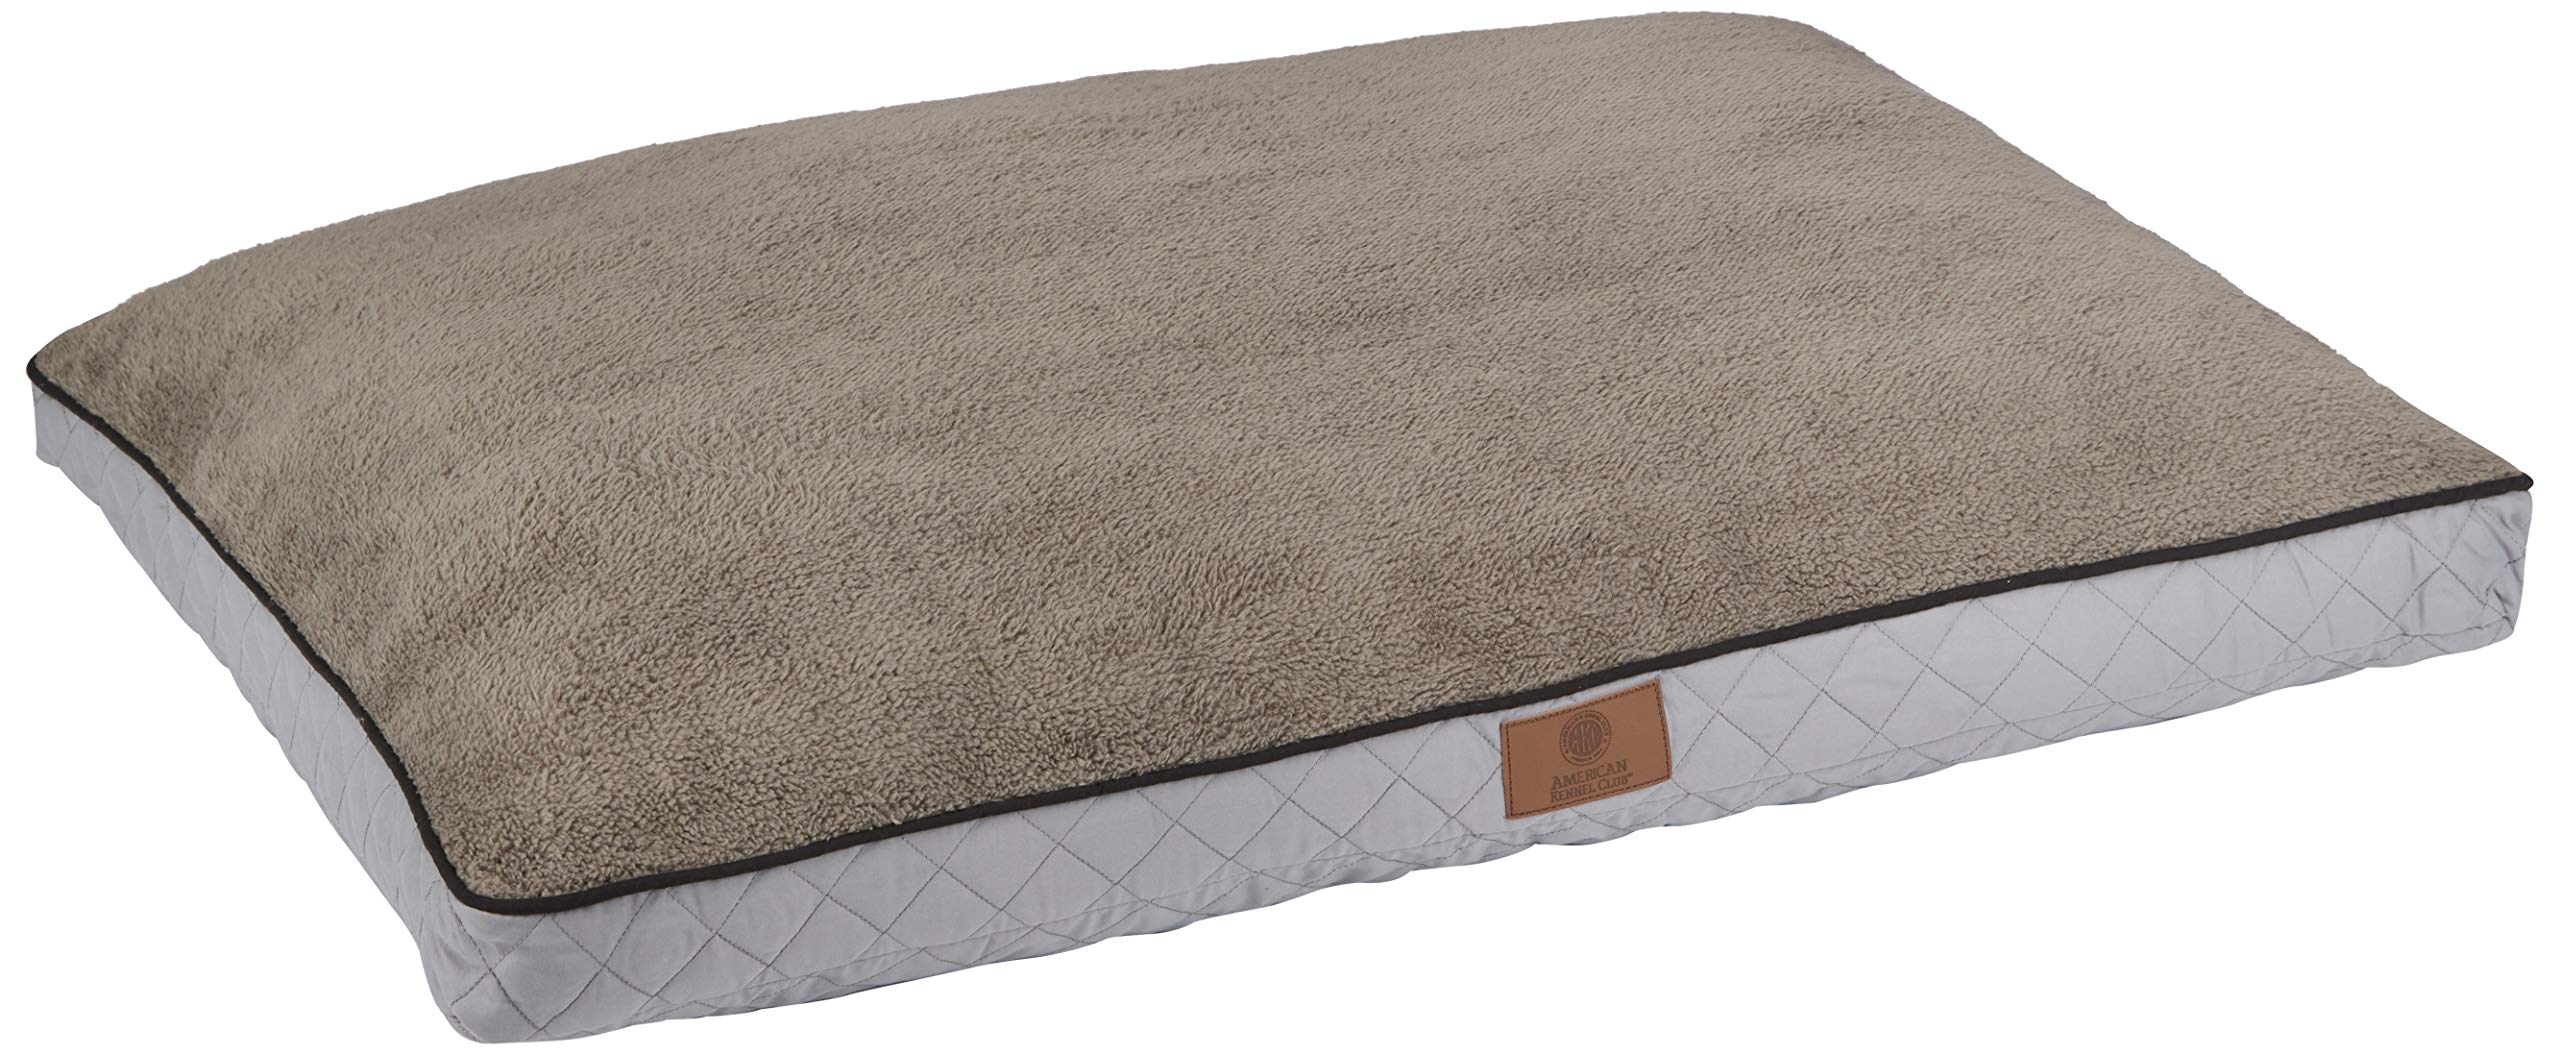 American Kennel Club AKC9690GRAY Diamond Stitched Reversible Pet Gusset Bed by American Kennel Club